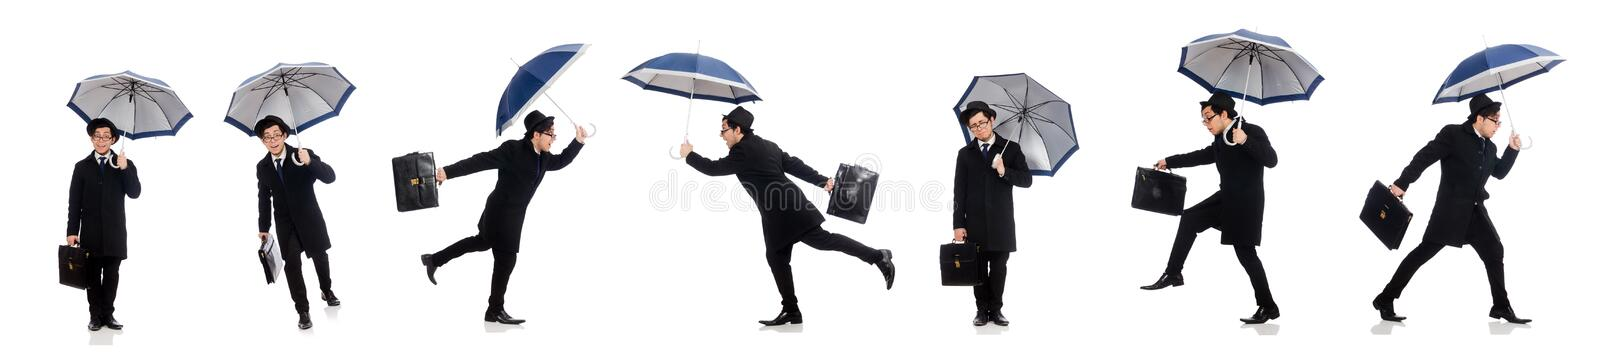 Young man holding suitcase and umbrella isolated on white royalty free stock image